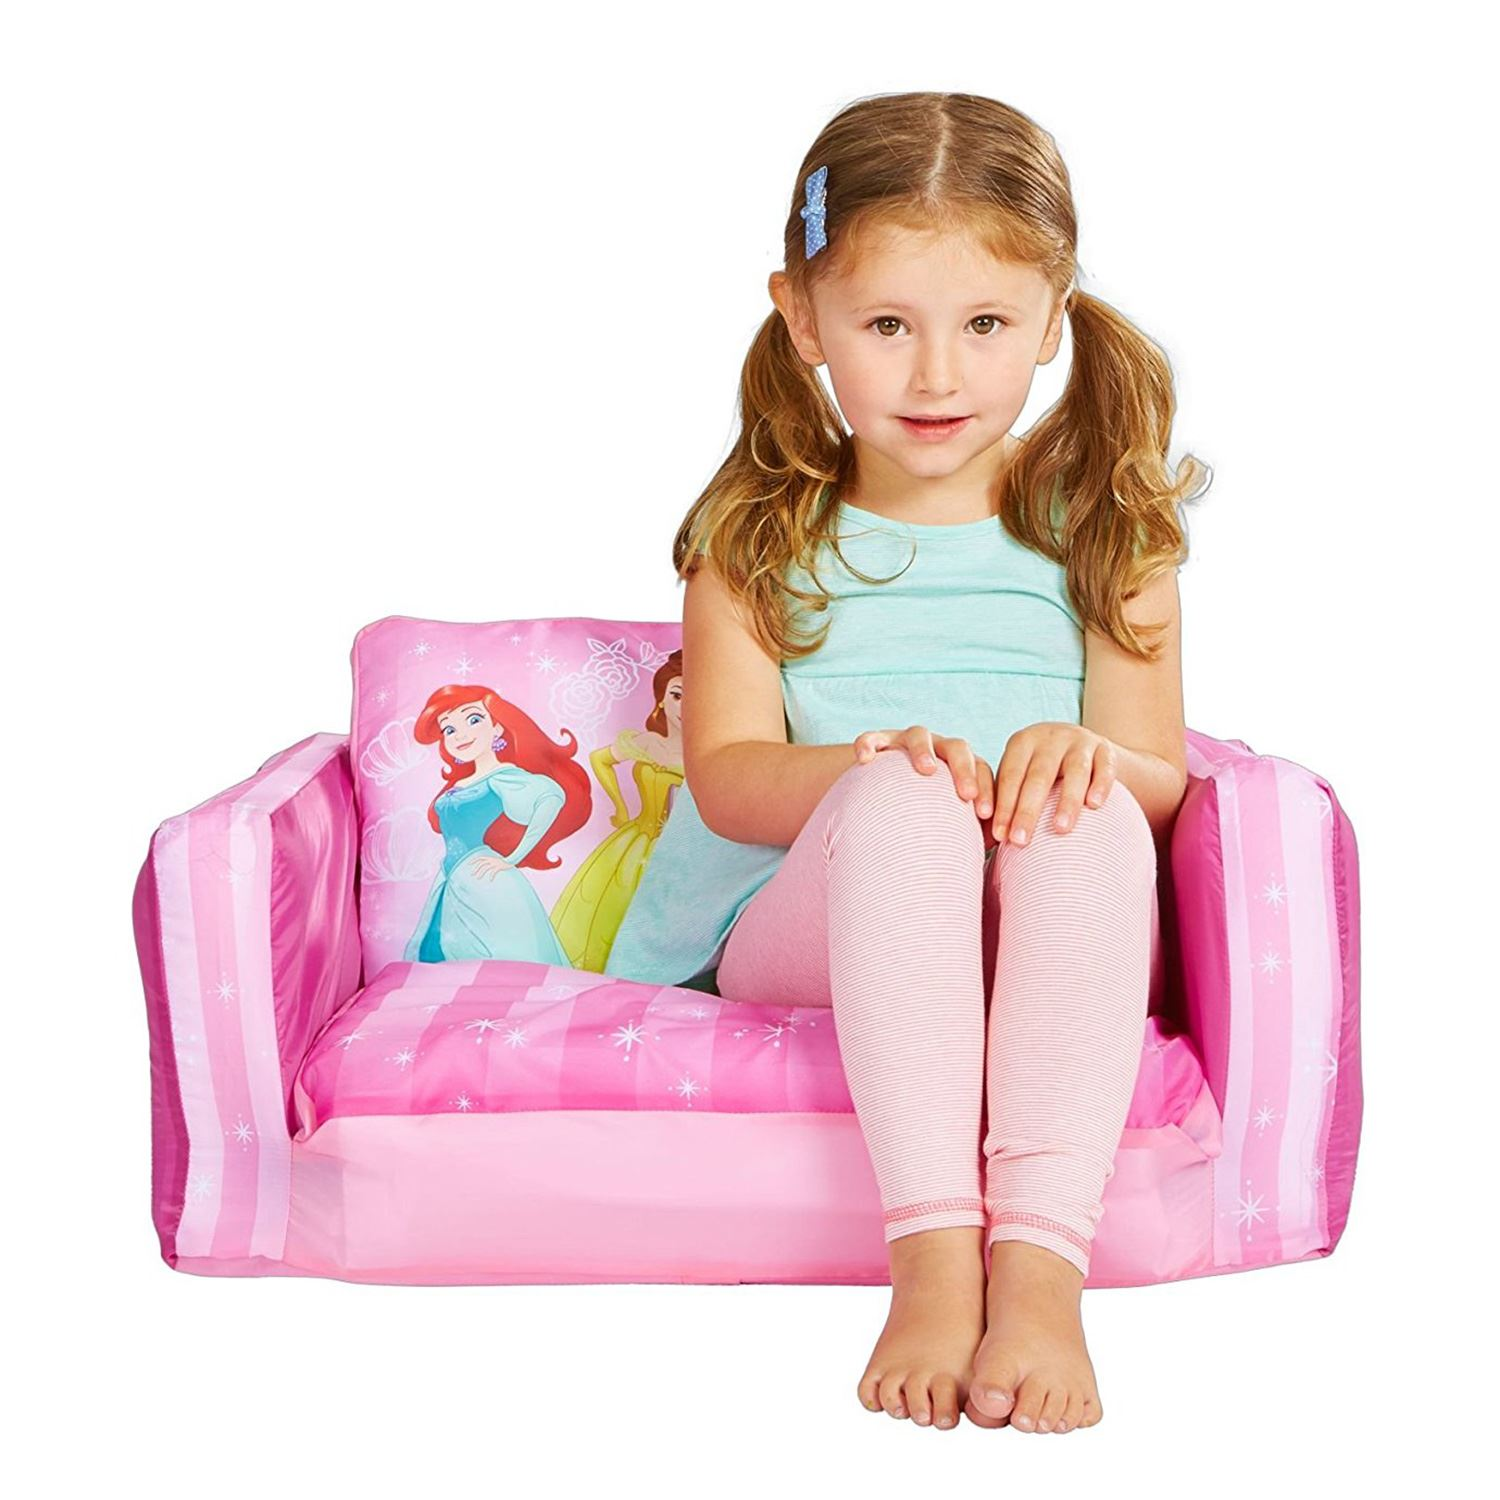 offiziell disney prinzessin sofa zum ausklappen pink neu. Black Bedroom Furniture Sets. Home Design Ideas